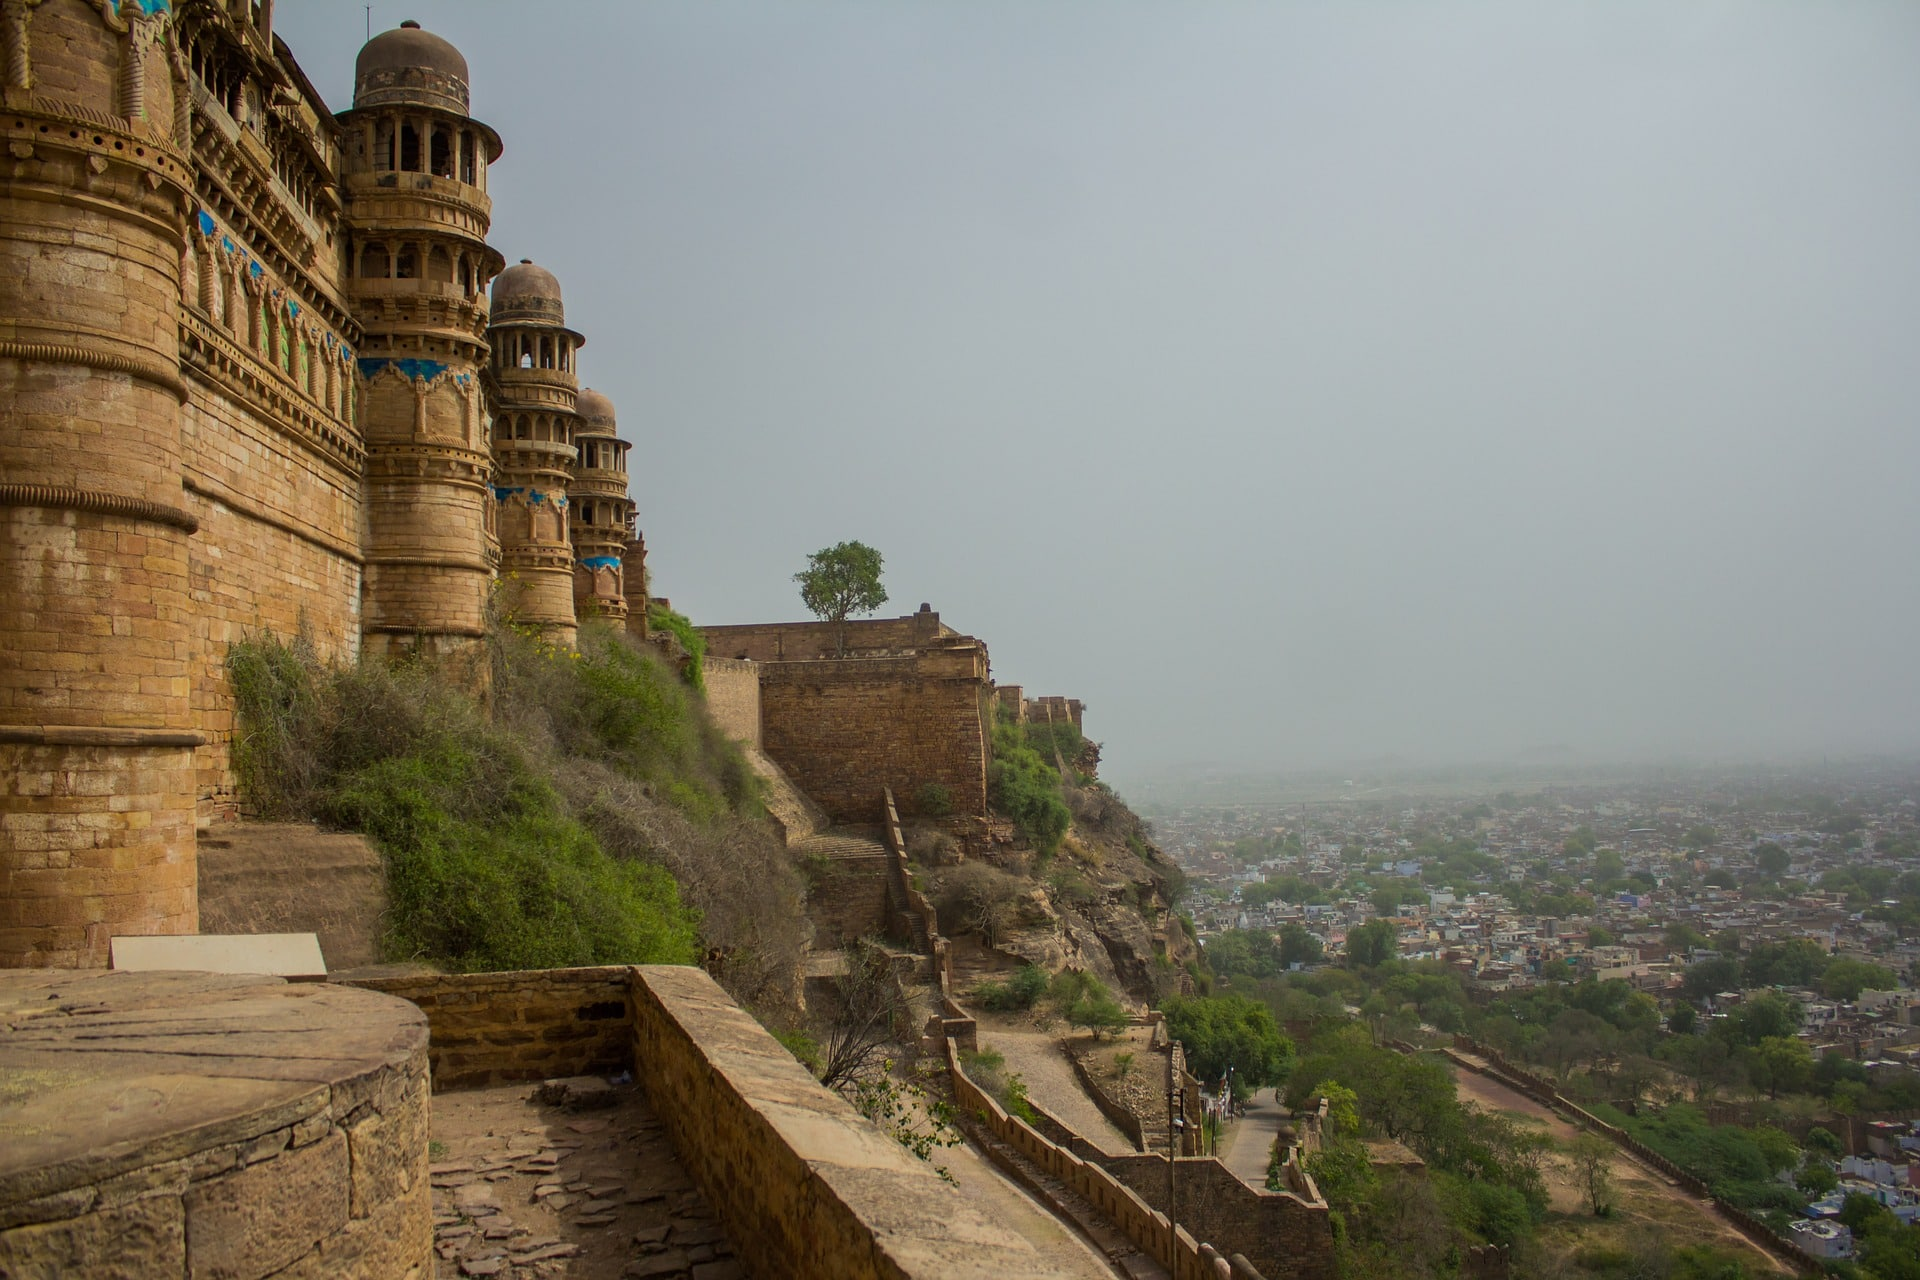 View of the city from the Gwalior Fort